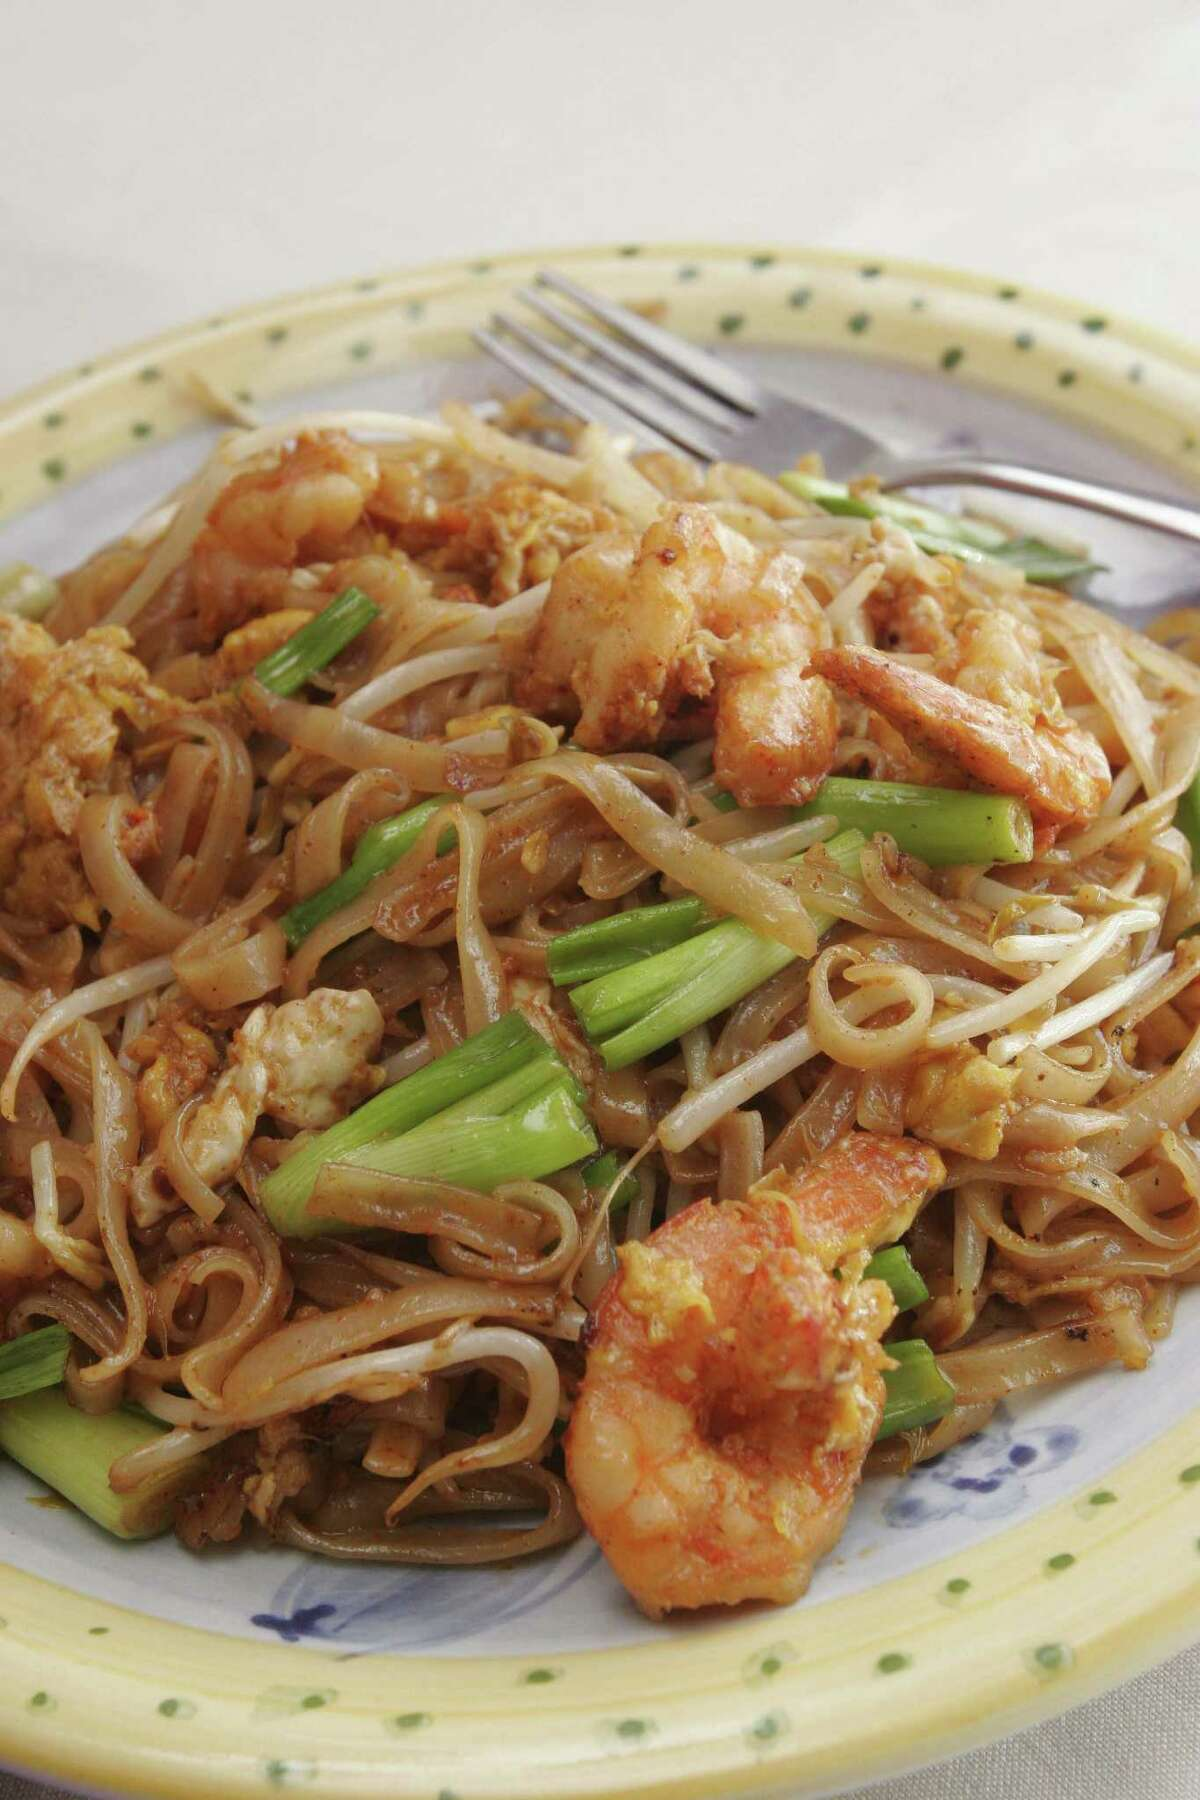 Bill Olive-for the chronicle. Thursday 06/16/2005. The Pad Thai with shrimp includes Stir fried Thai noodles w/ egg, tofu, scallion, bean sprouts and ground peanut. Vieng Thai restaurant located at 6929 Long Point Dr. HOUCHRON CAPTION (06/23/2005) SECDINING: Vieng Thai's pad Thai with shrimp.